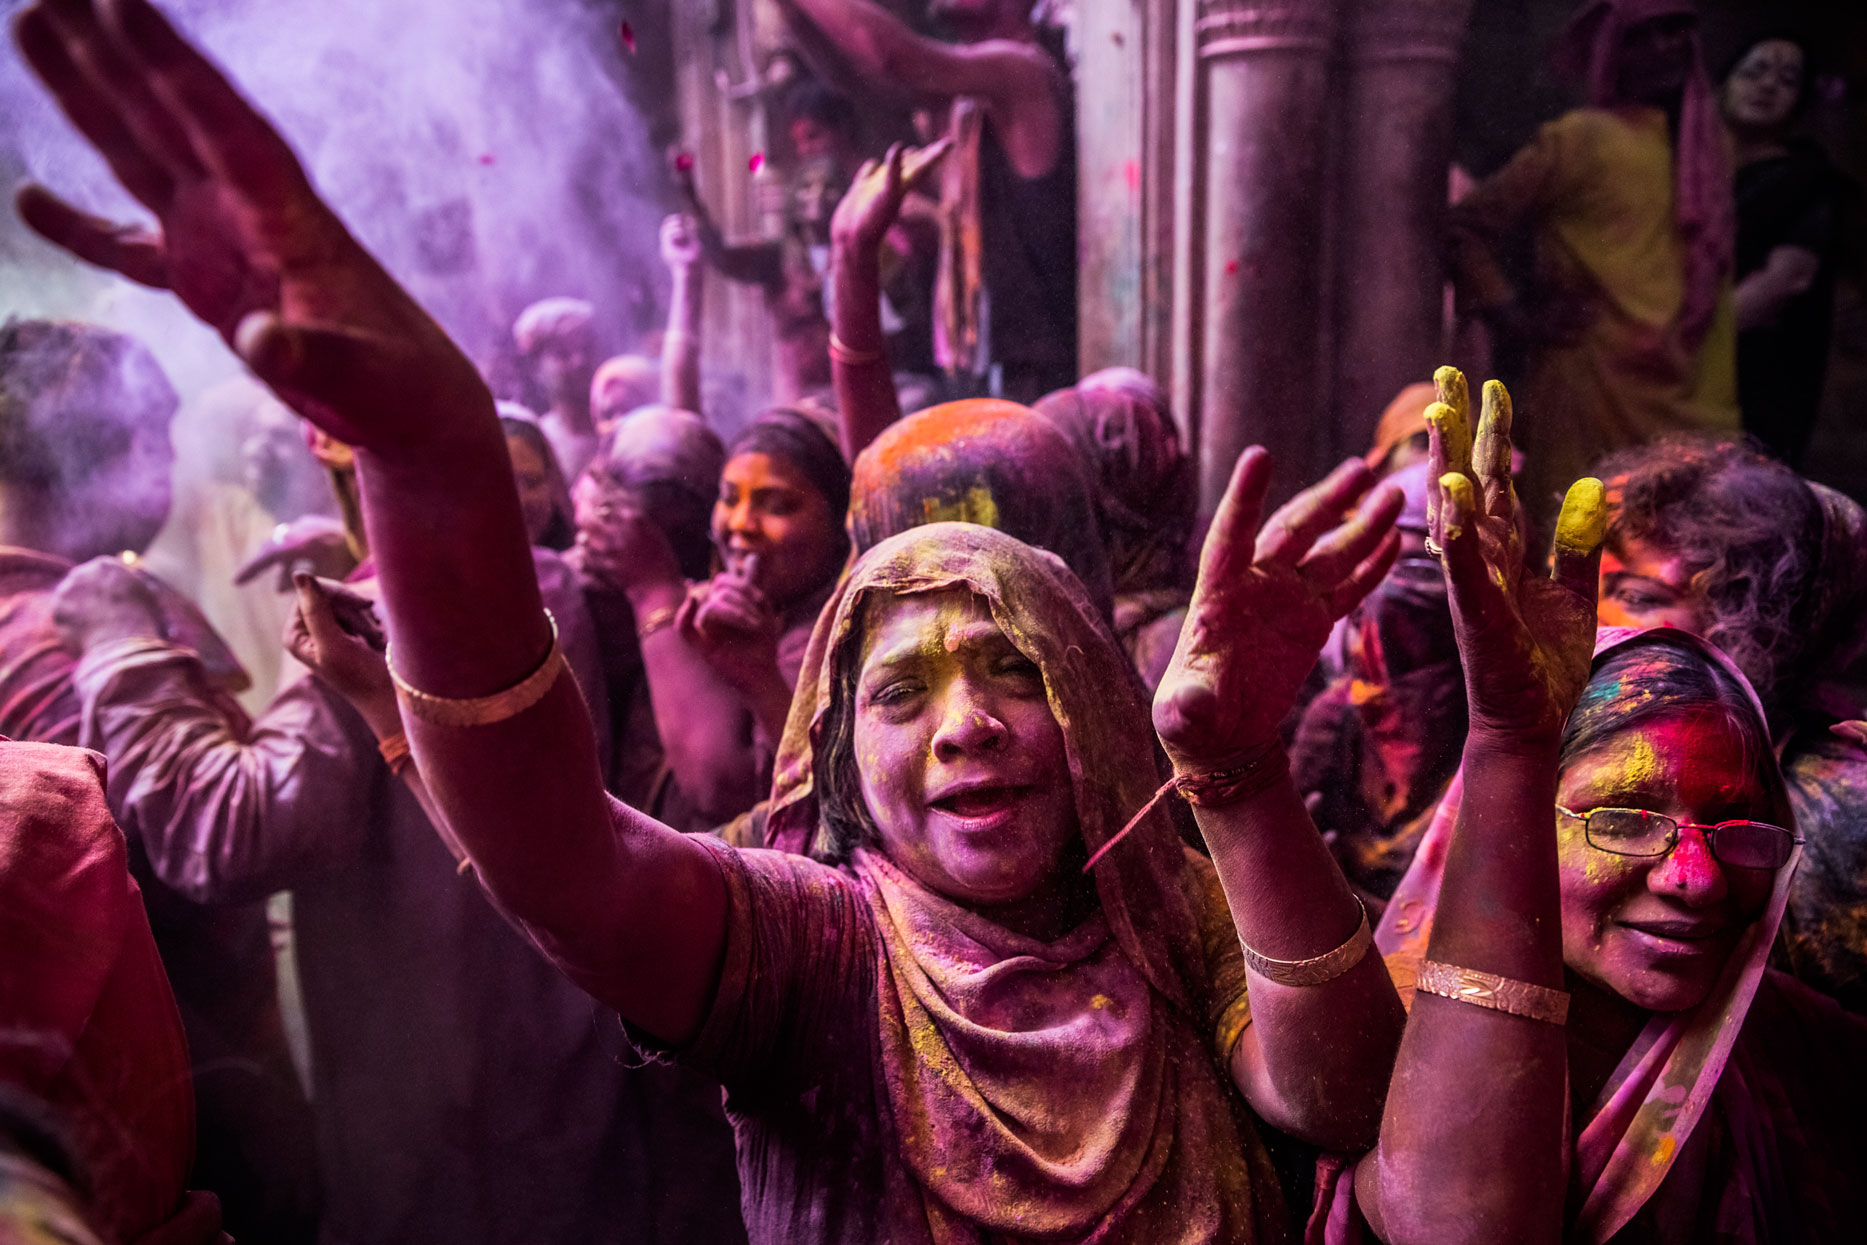 Hindu devotees play with colour during Holi celebrations at the Banke Bihari temple on March 27, 2013 in Vrindavan, India.